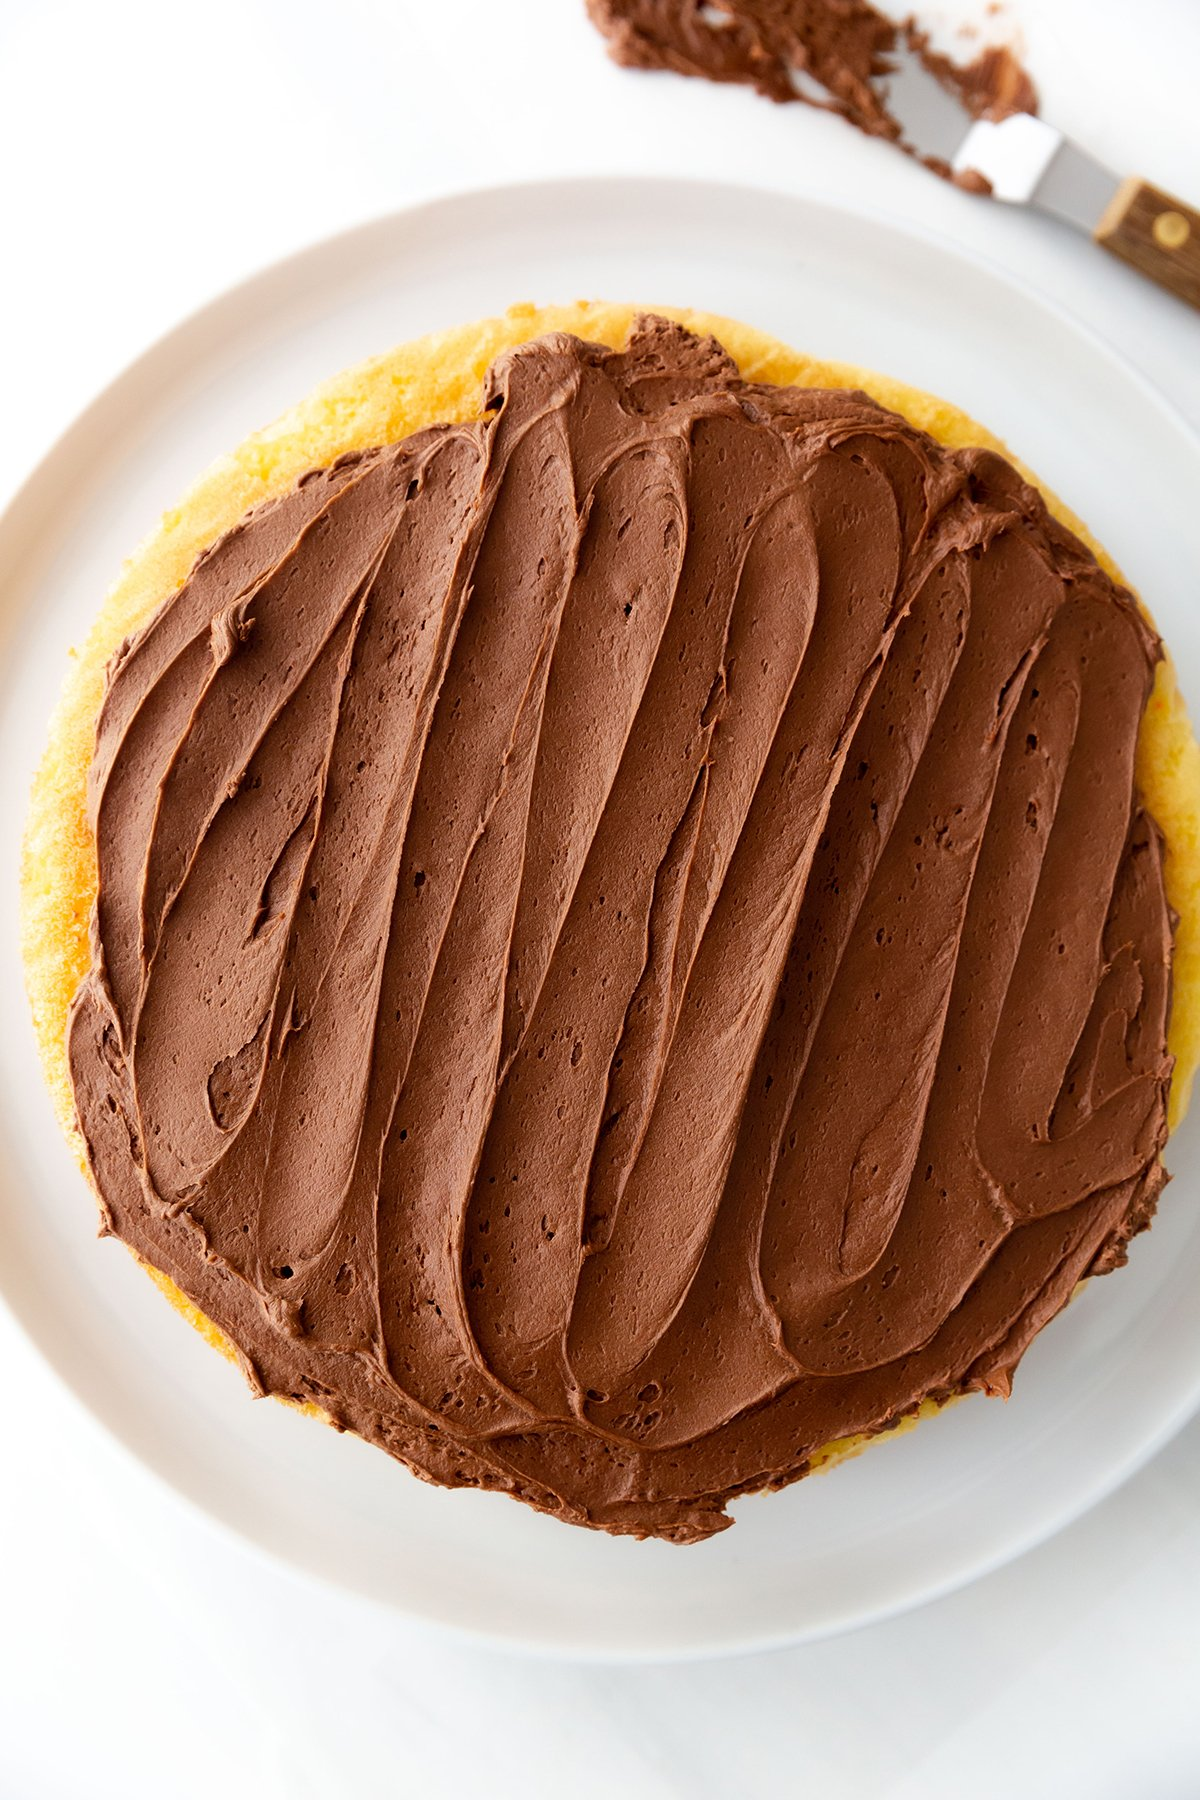 Chocolate Frosting made with Store Bought Canned Frosting